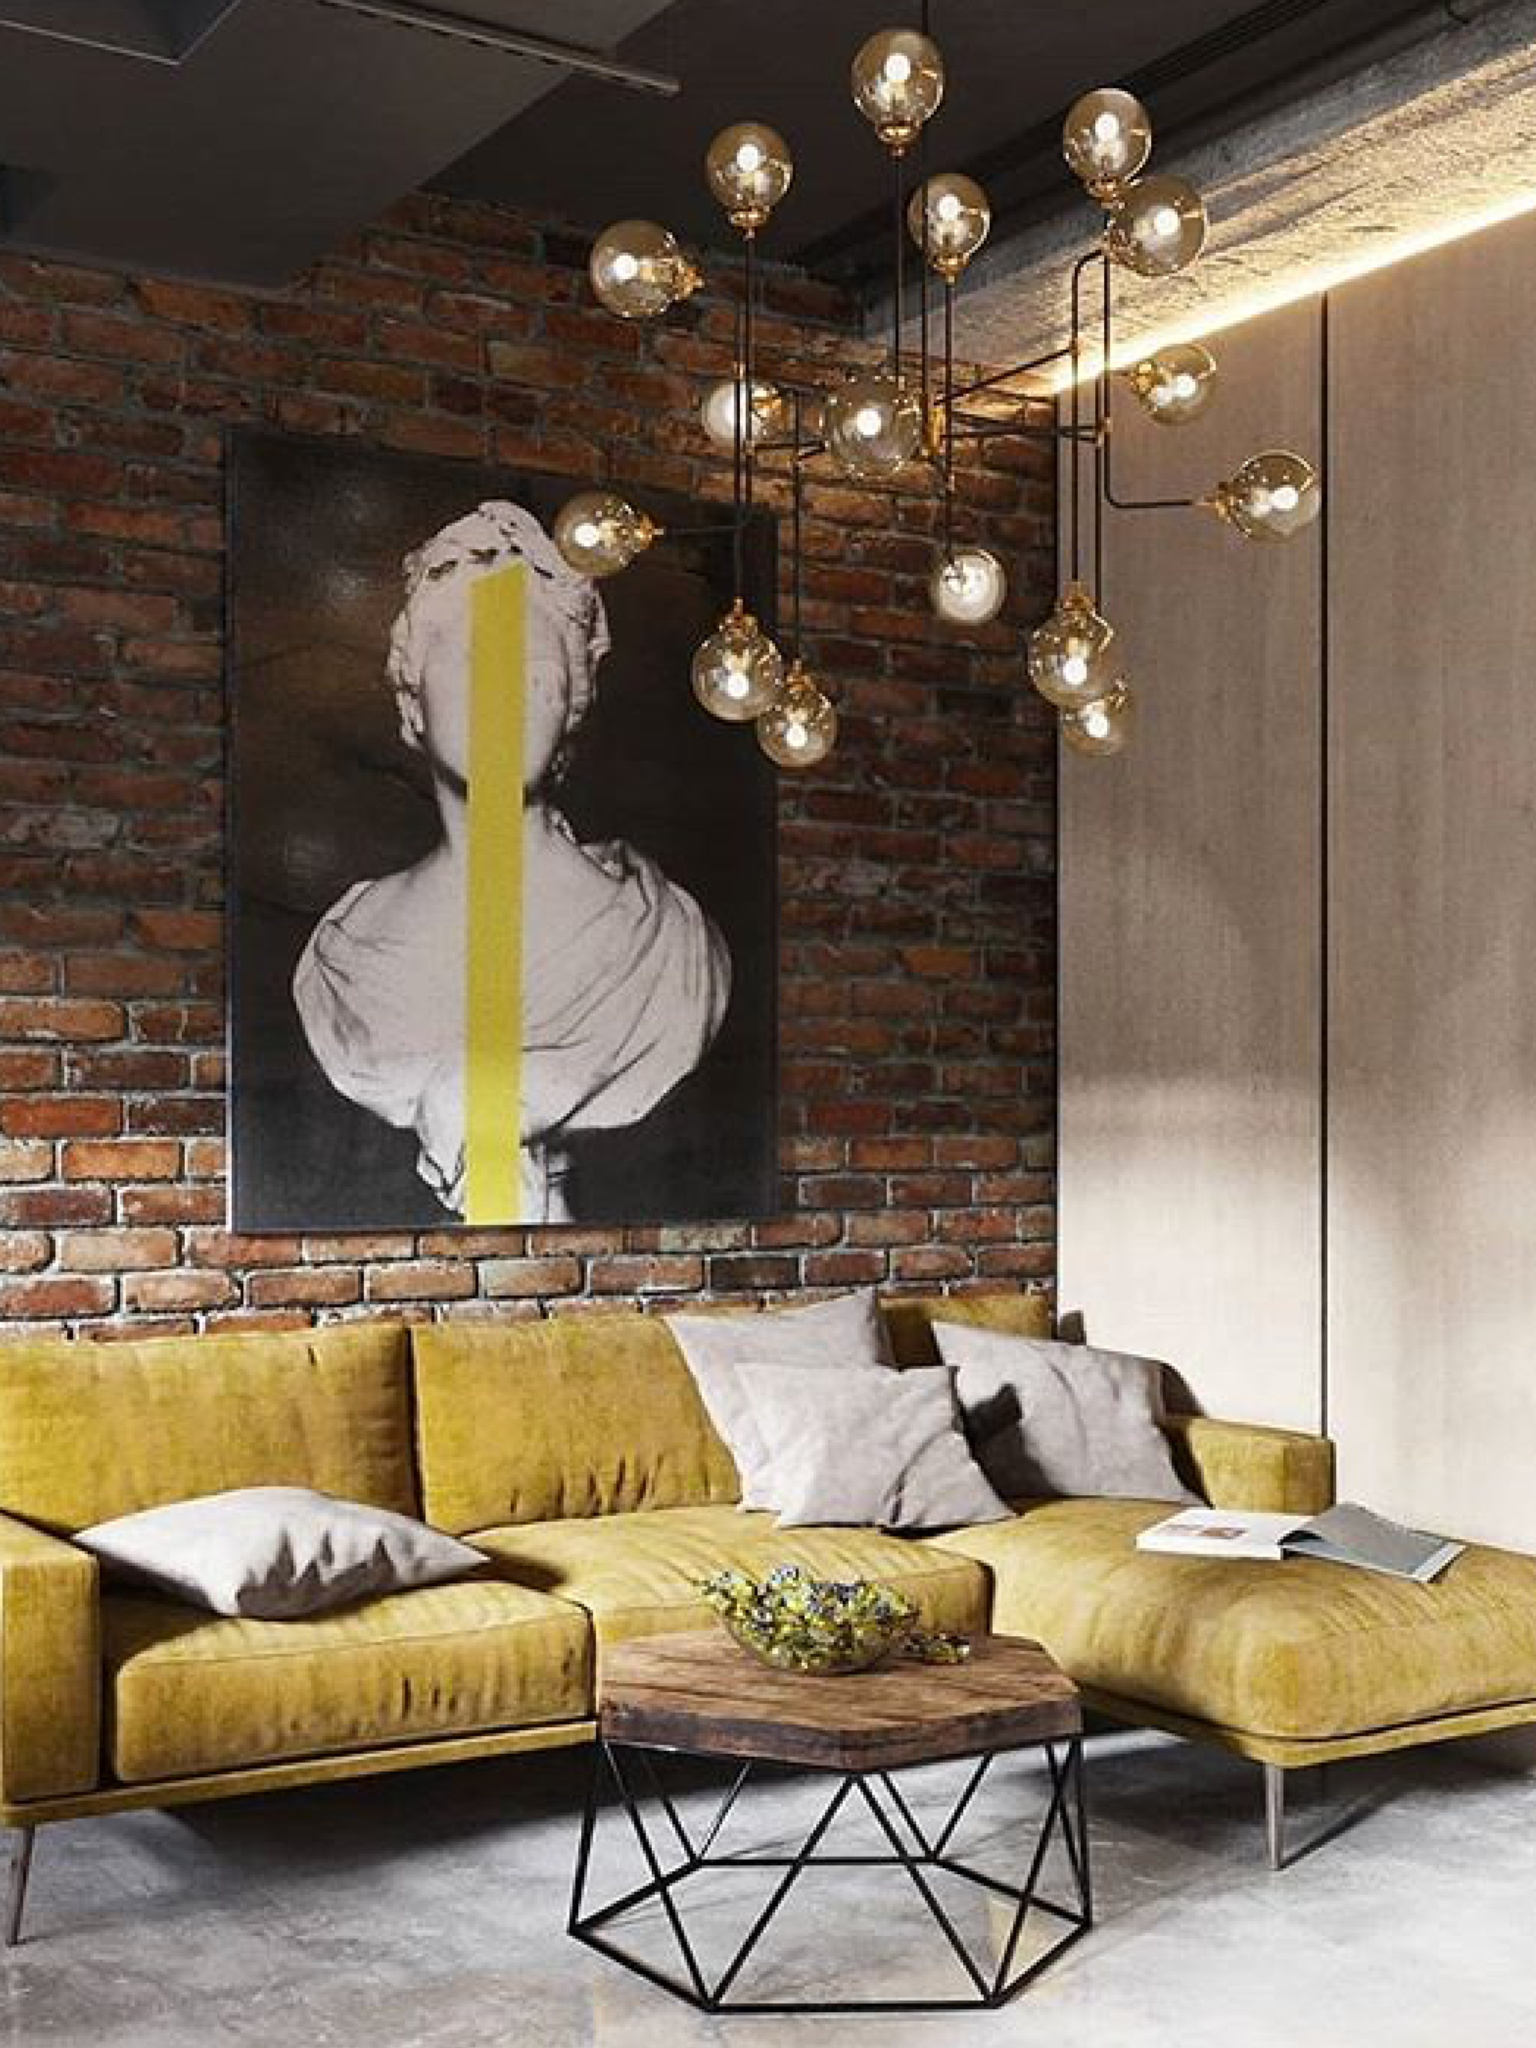 Yes A Sofa But For A Warehouse Industrial Living Room Design Loft Interior Design Brick Interior Wall #warehouse #living #room #furniture